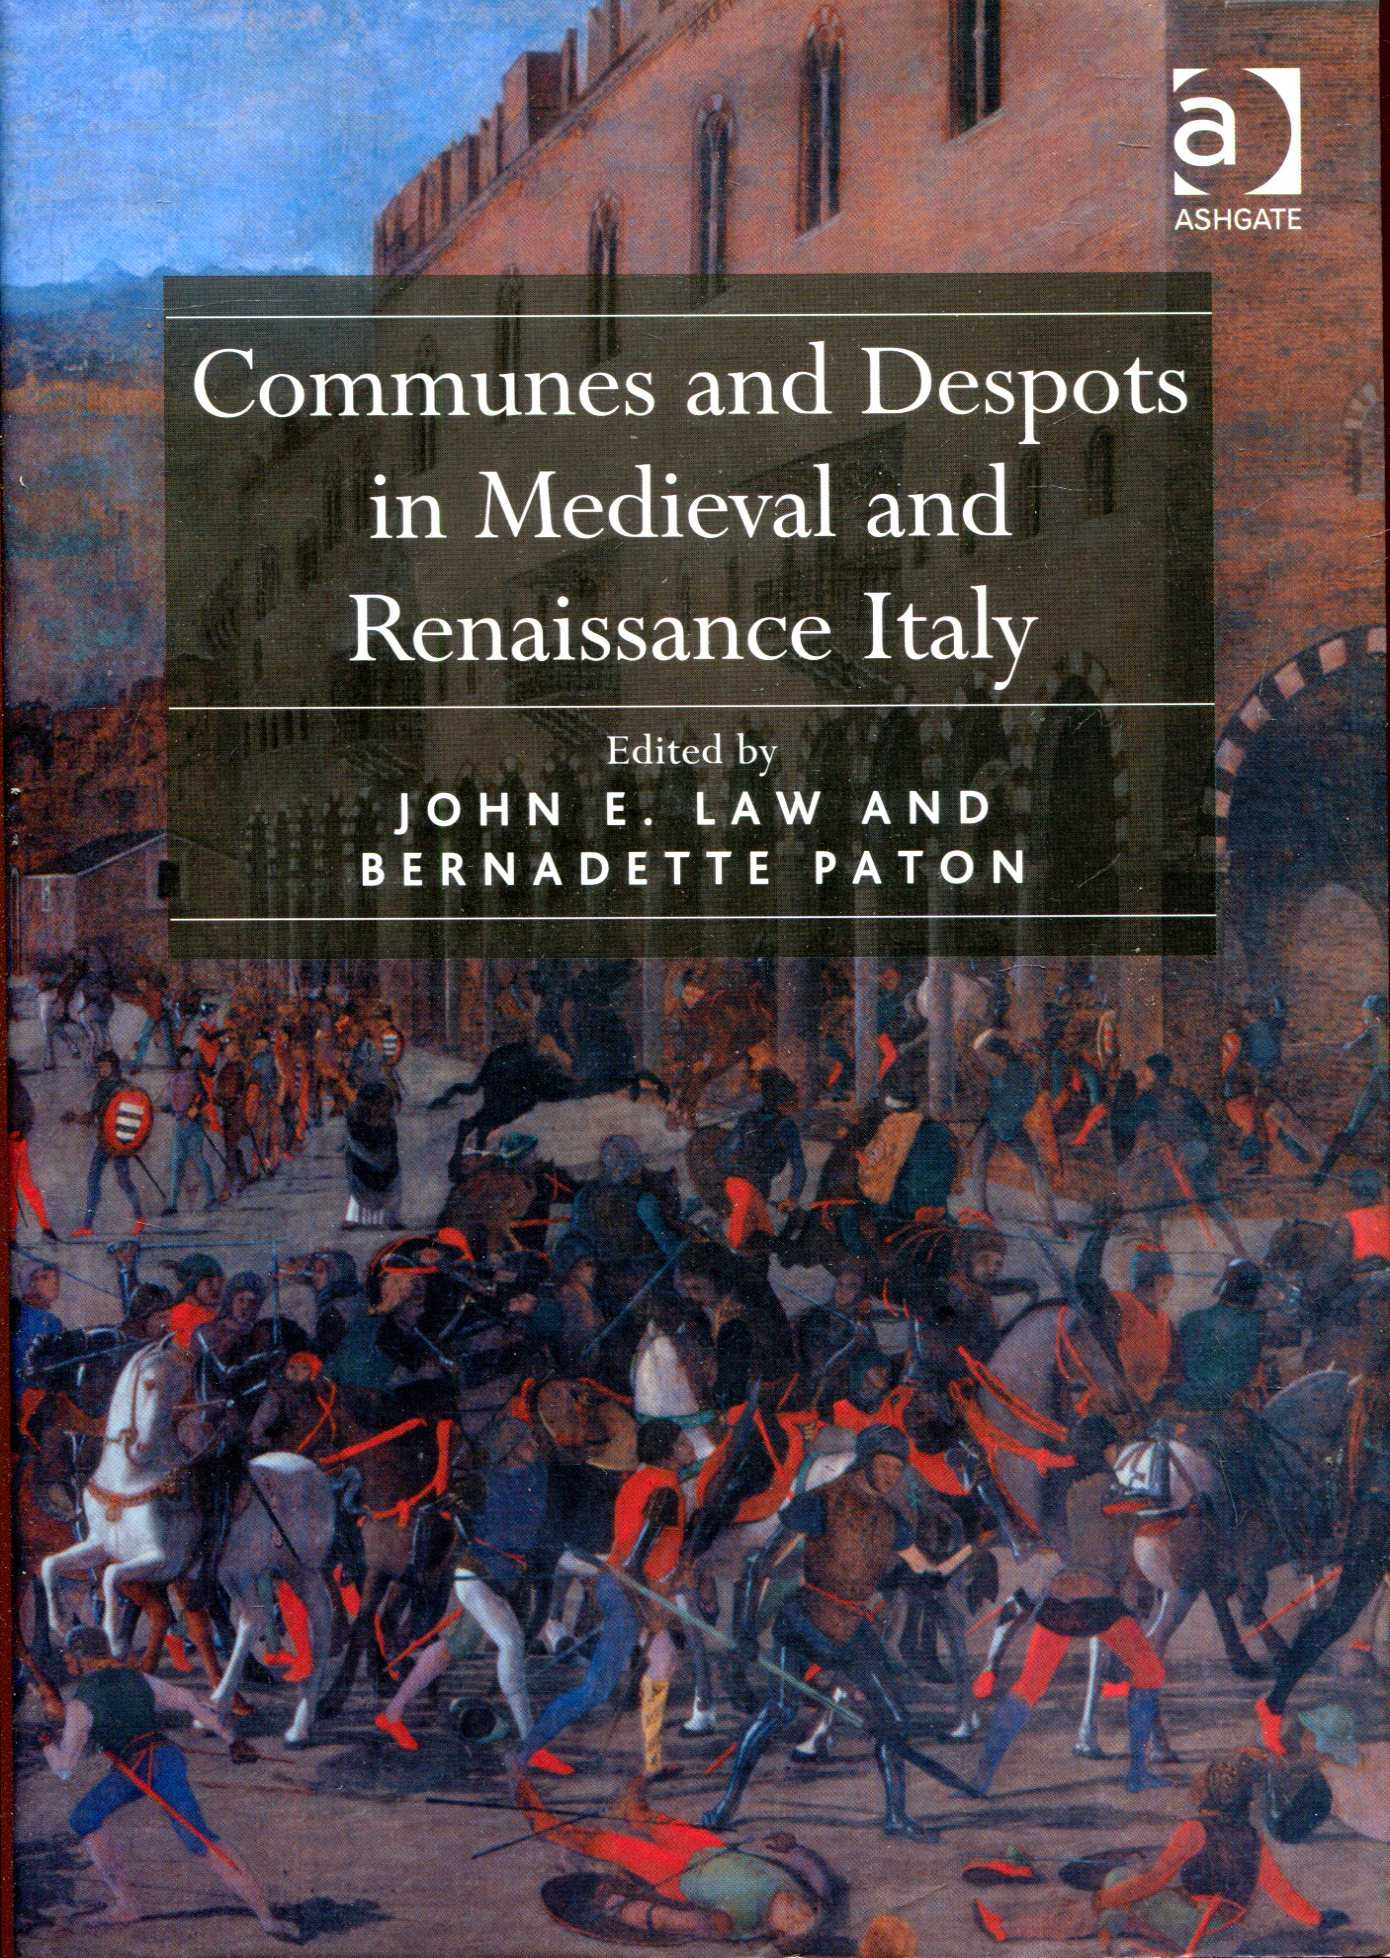 Image for Communes and Despots in Medieval and Renaissance Italy